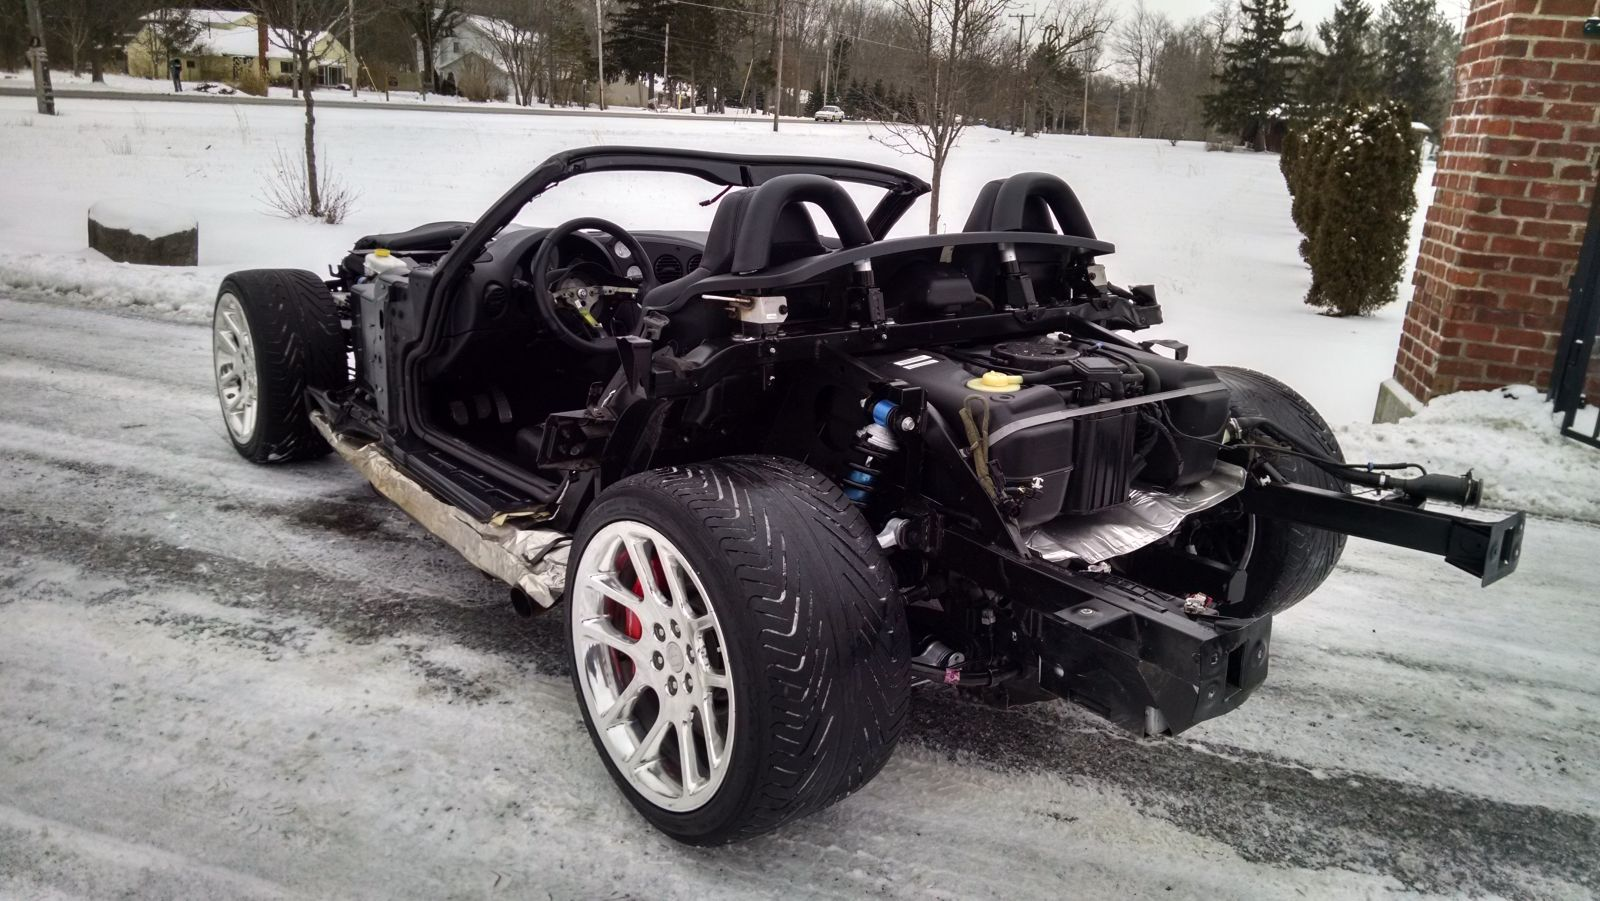 Go Karts Cleveland >> DODGE VIPER (7) - Cleveland Power & Performance